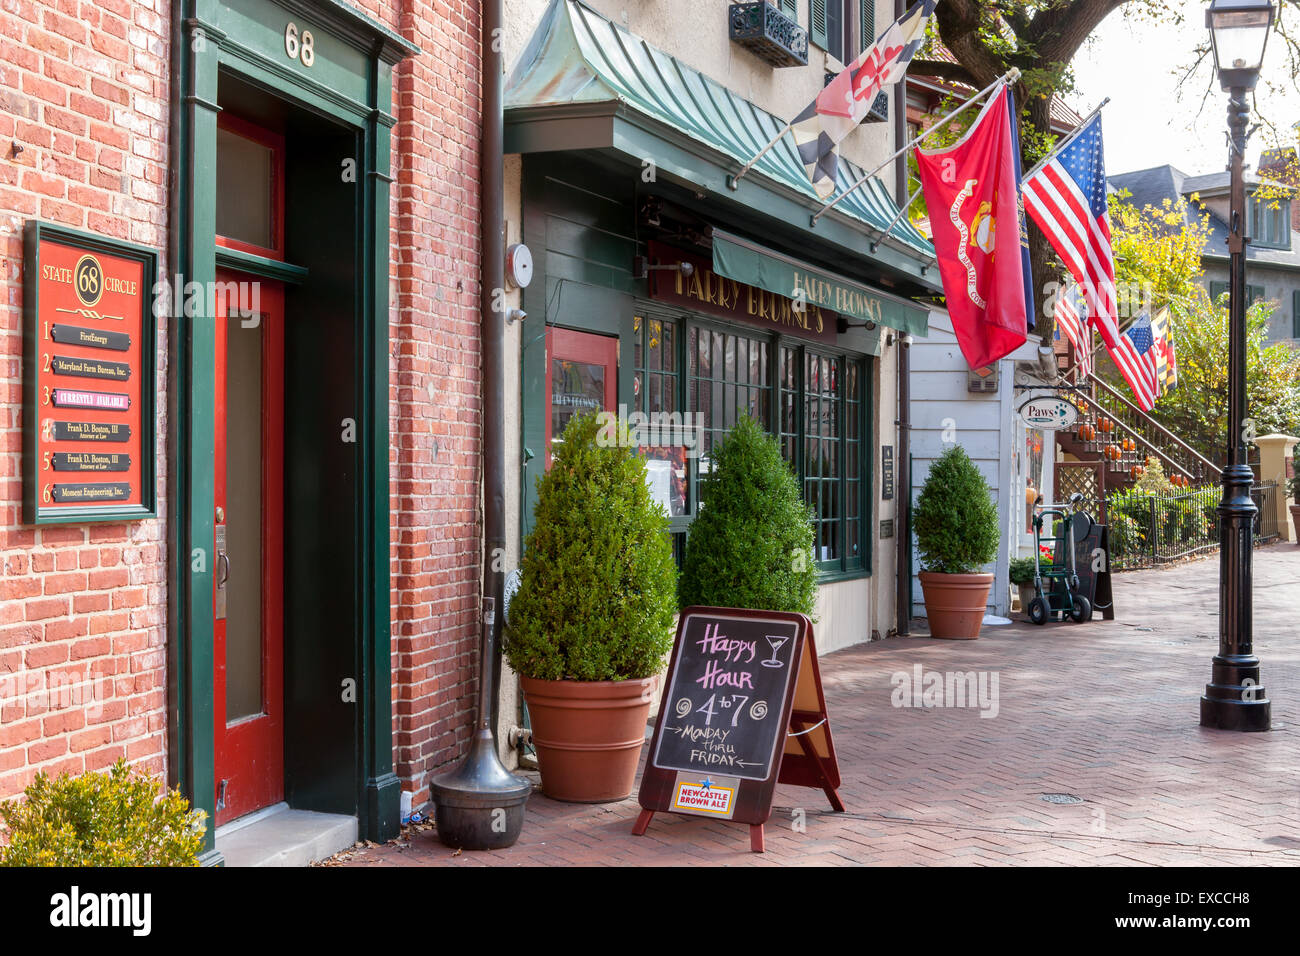 Facades with flags on State Circle in Annapolis, Maryland. - Stock Image